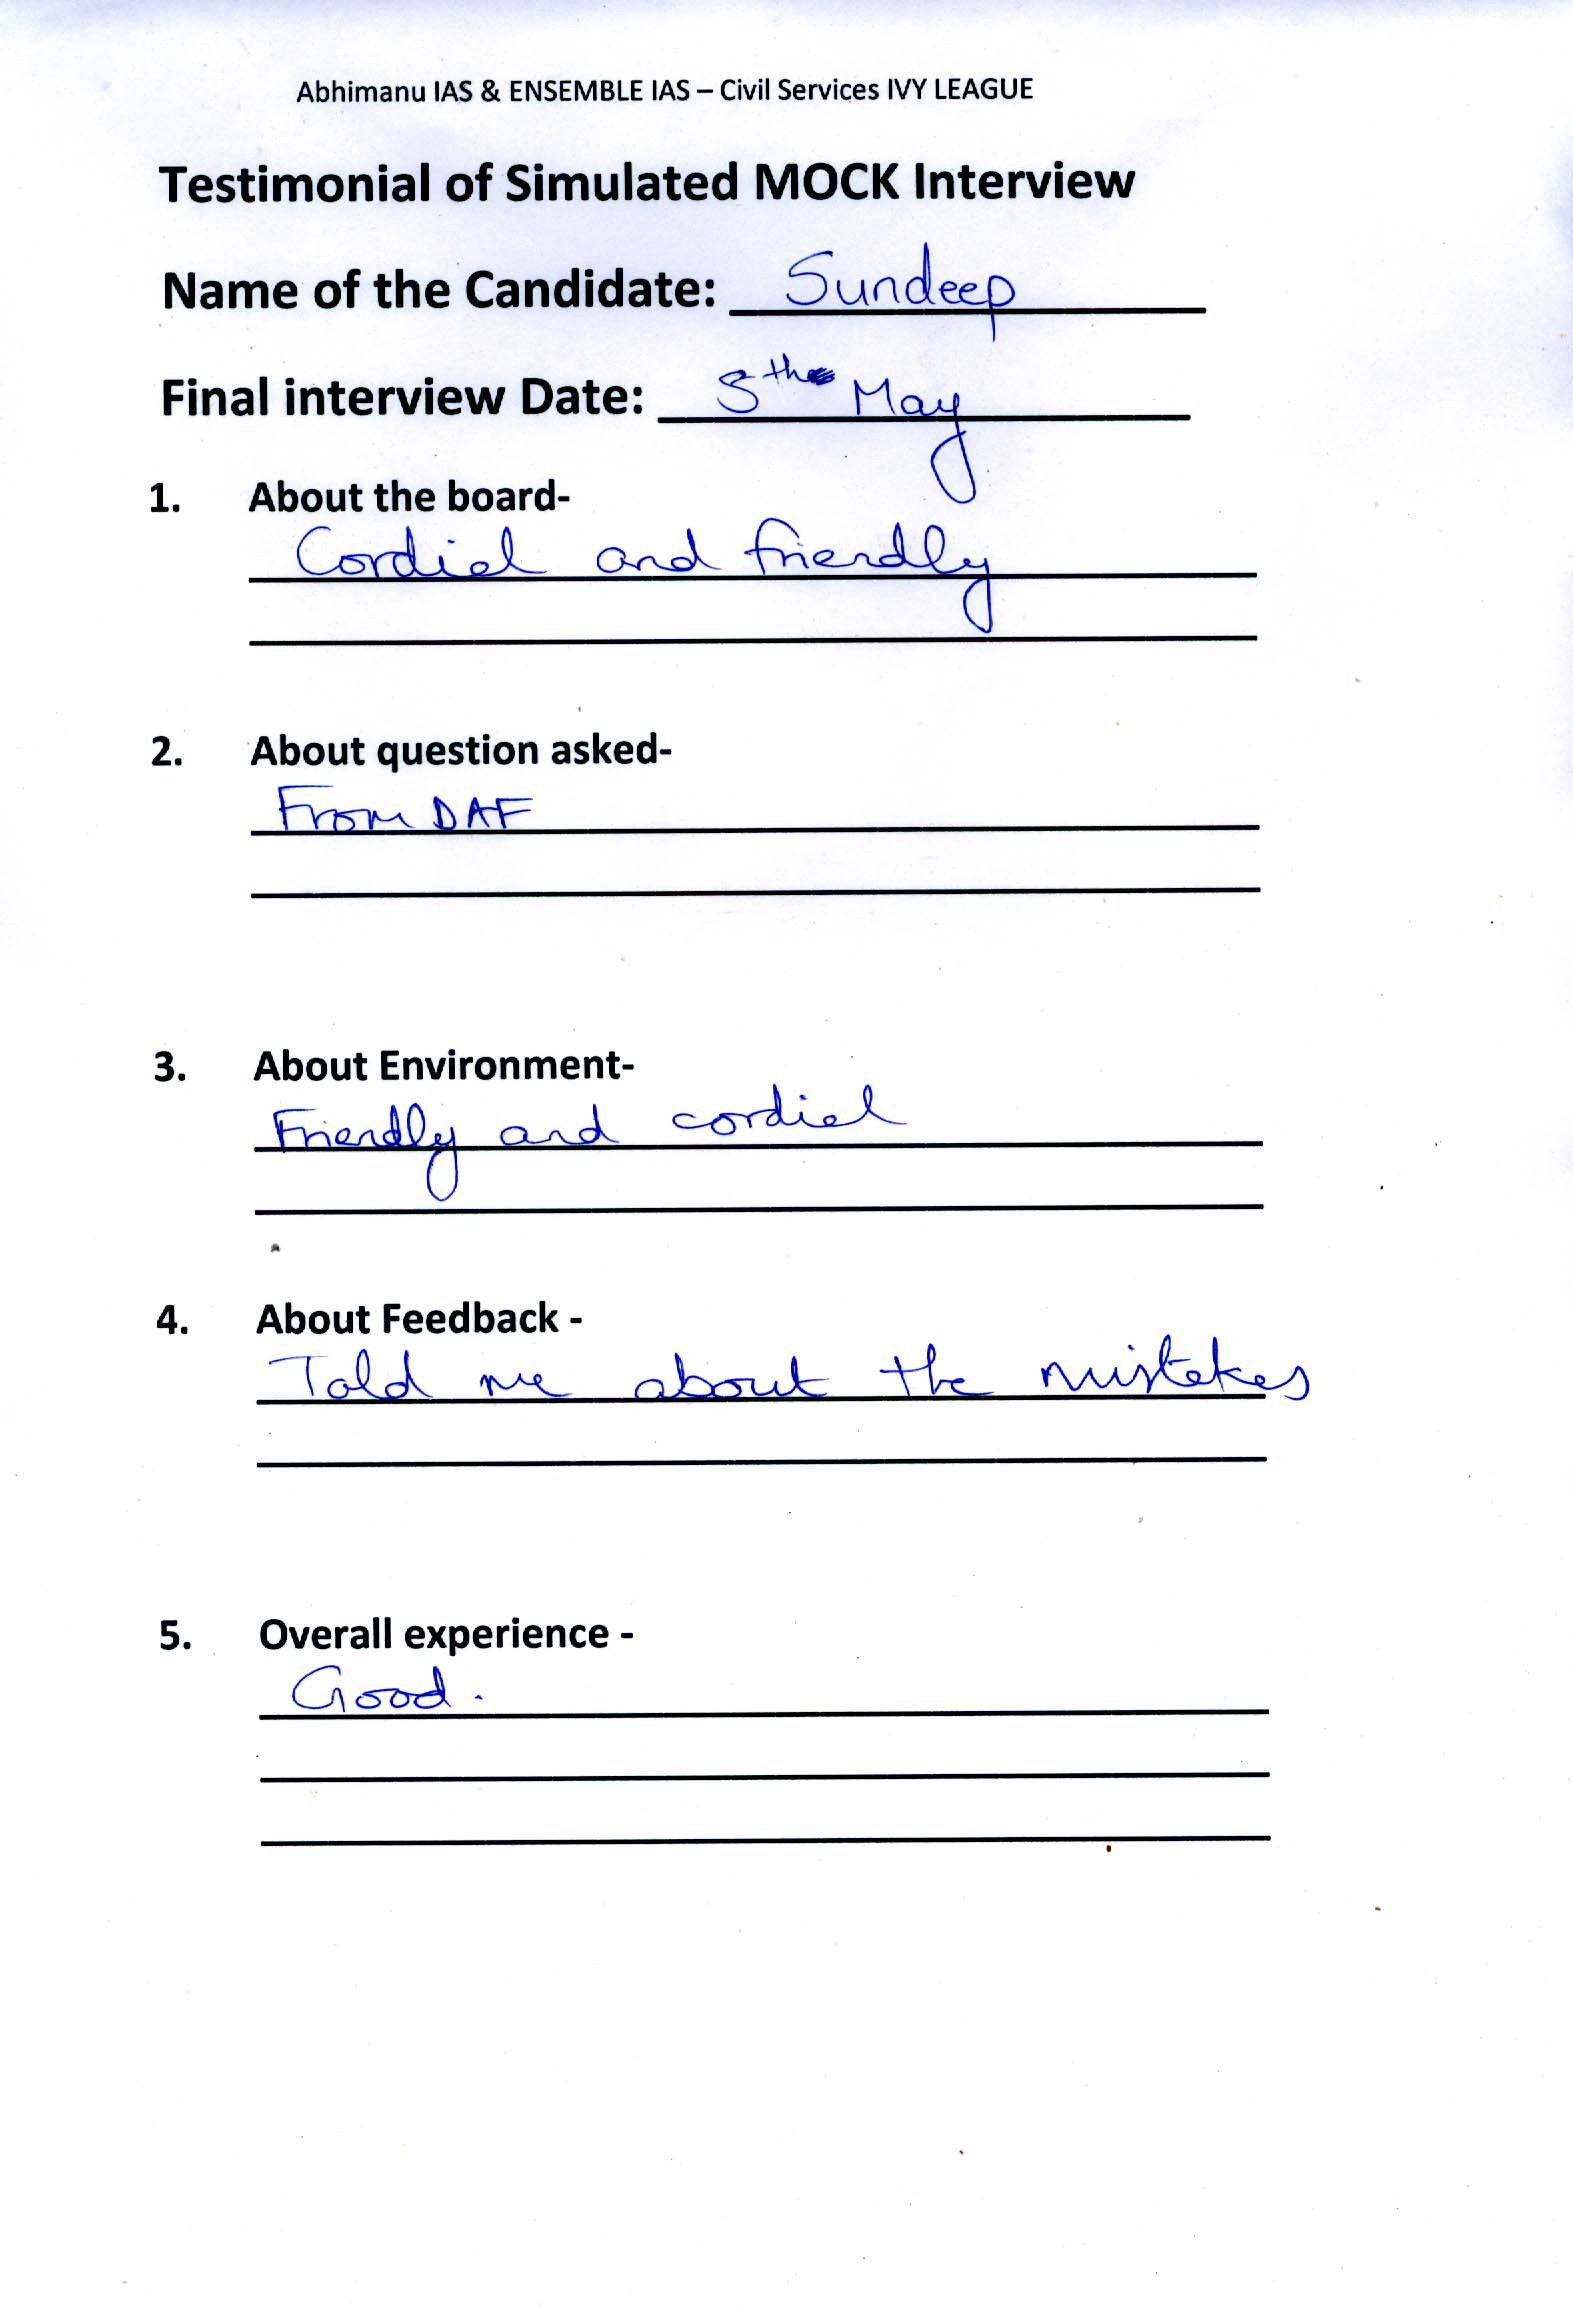 Interview Testimonial By- Sundeep